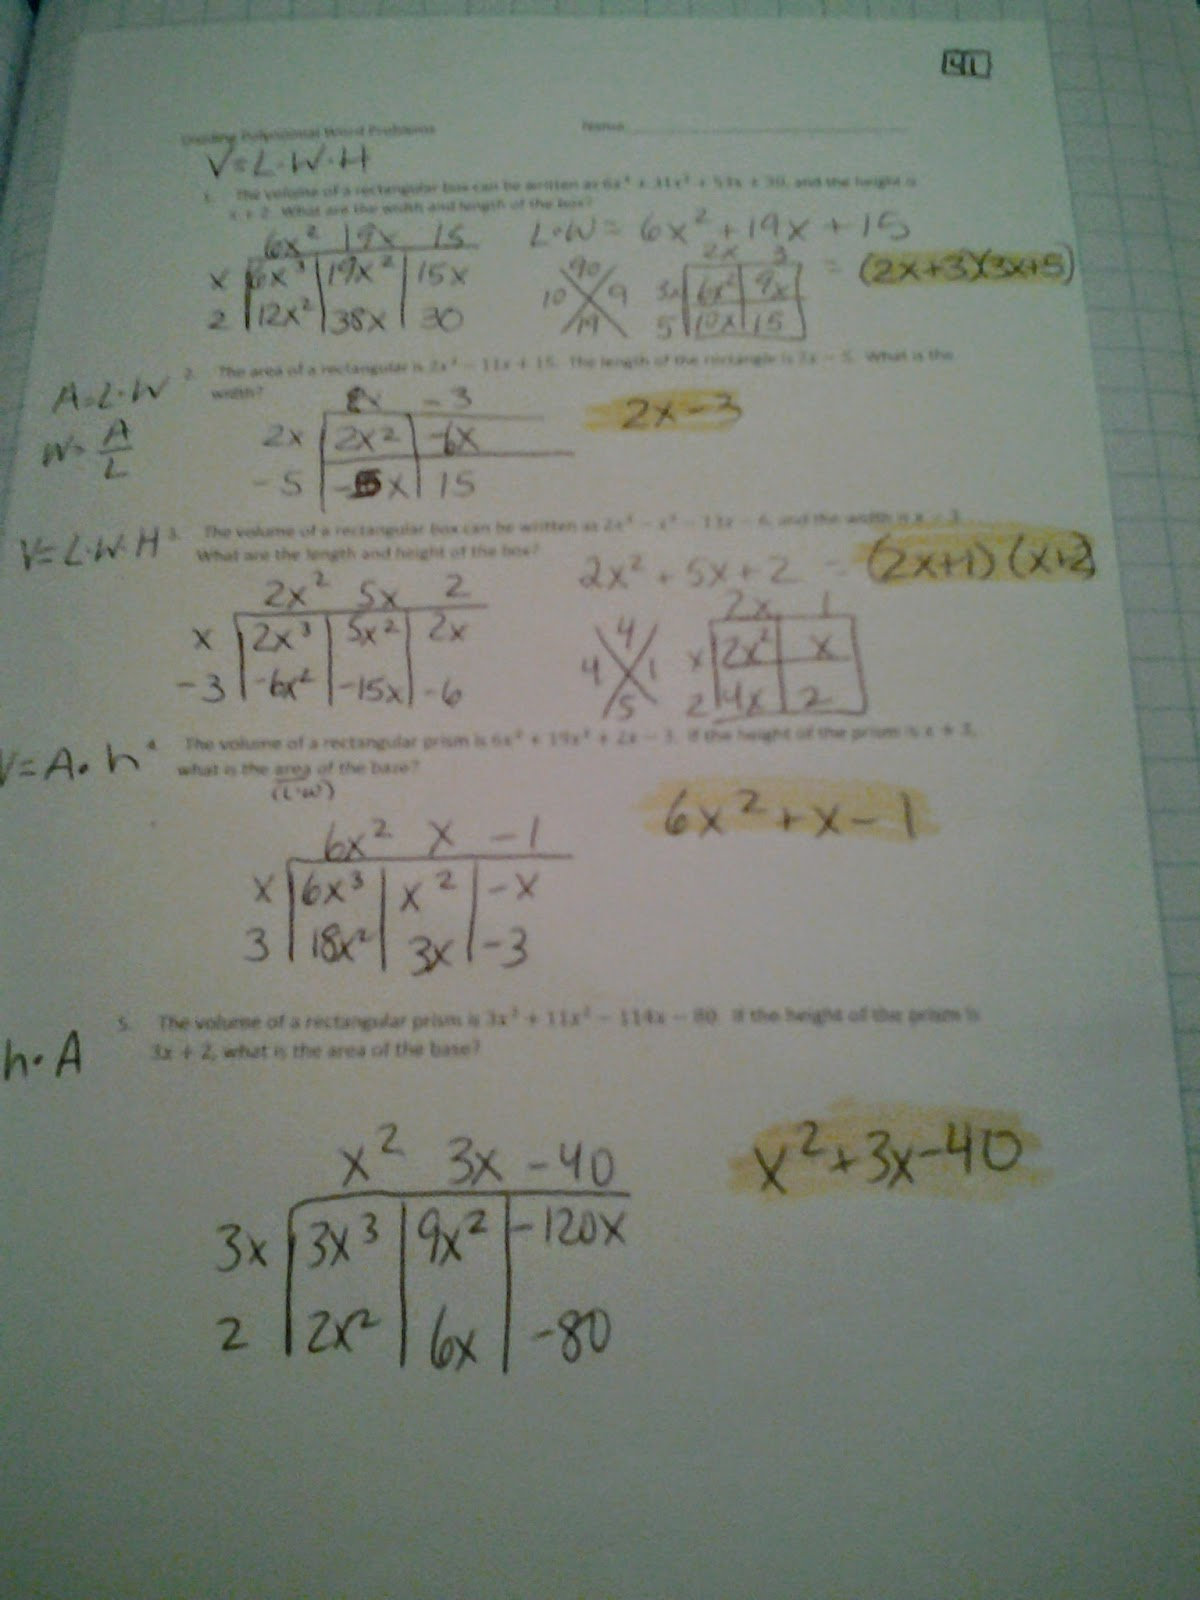 Dividing Polynomials Worksheet Kuta